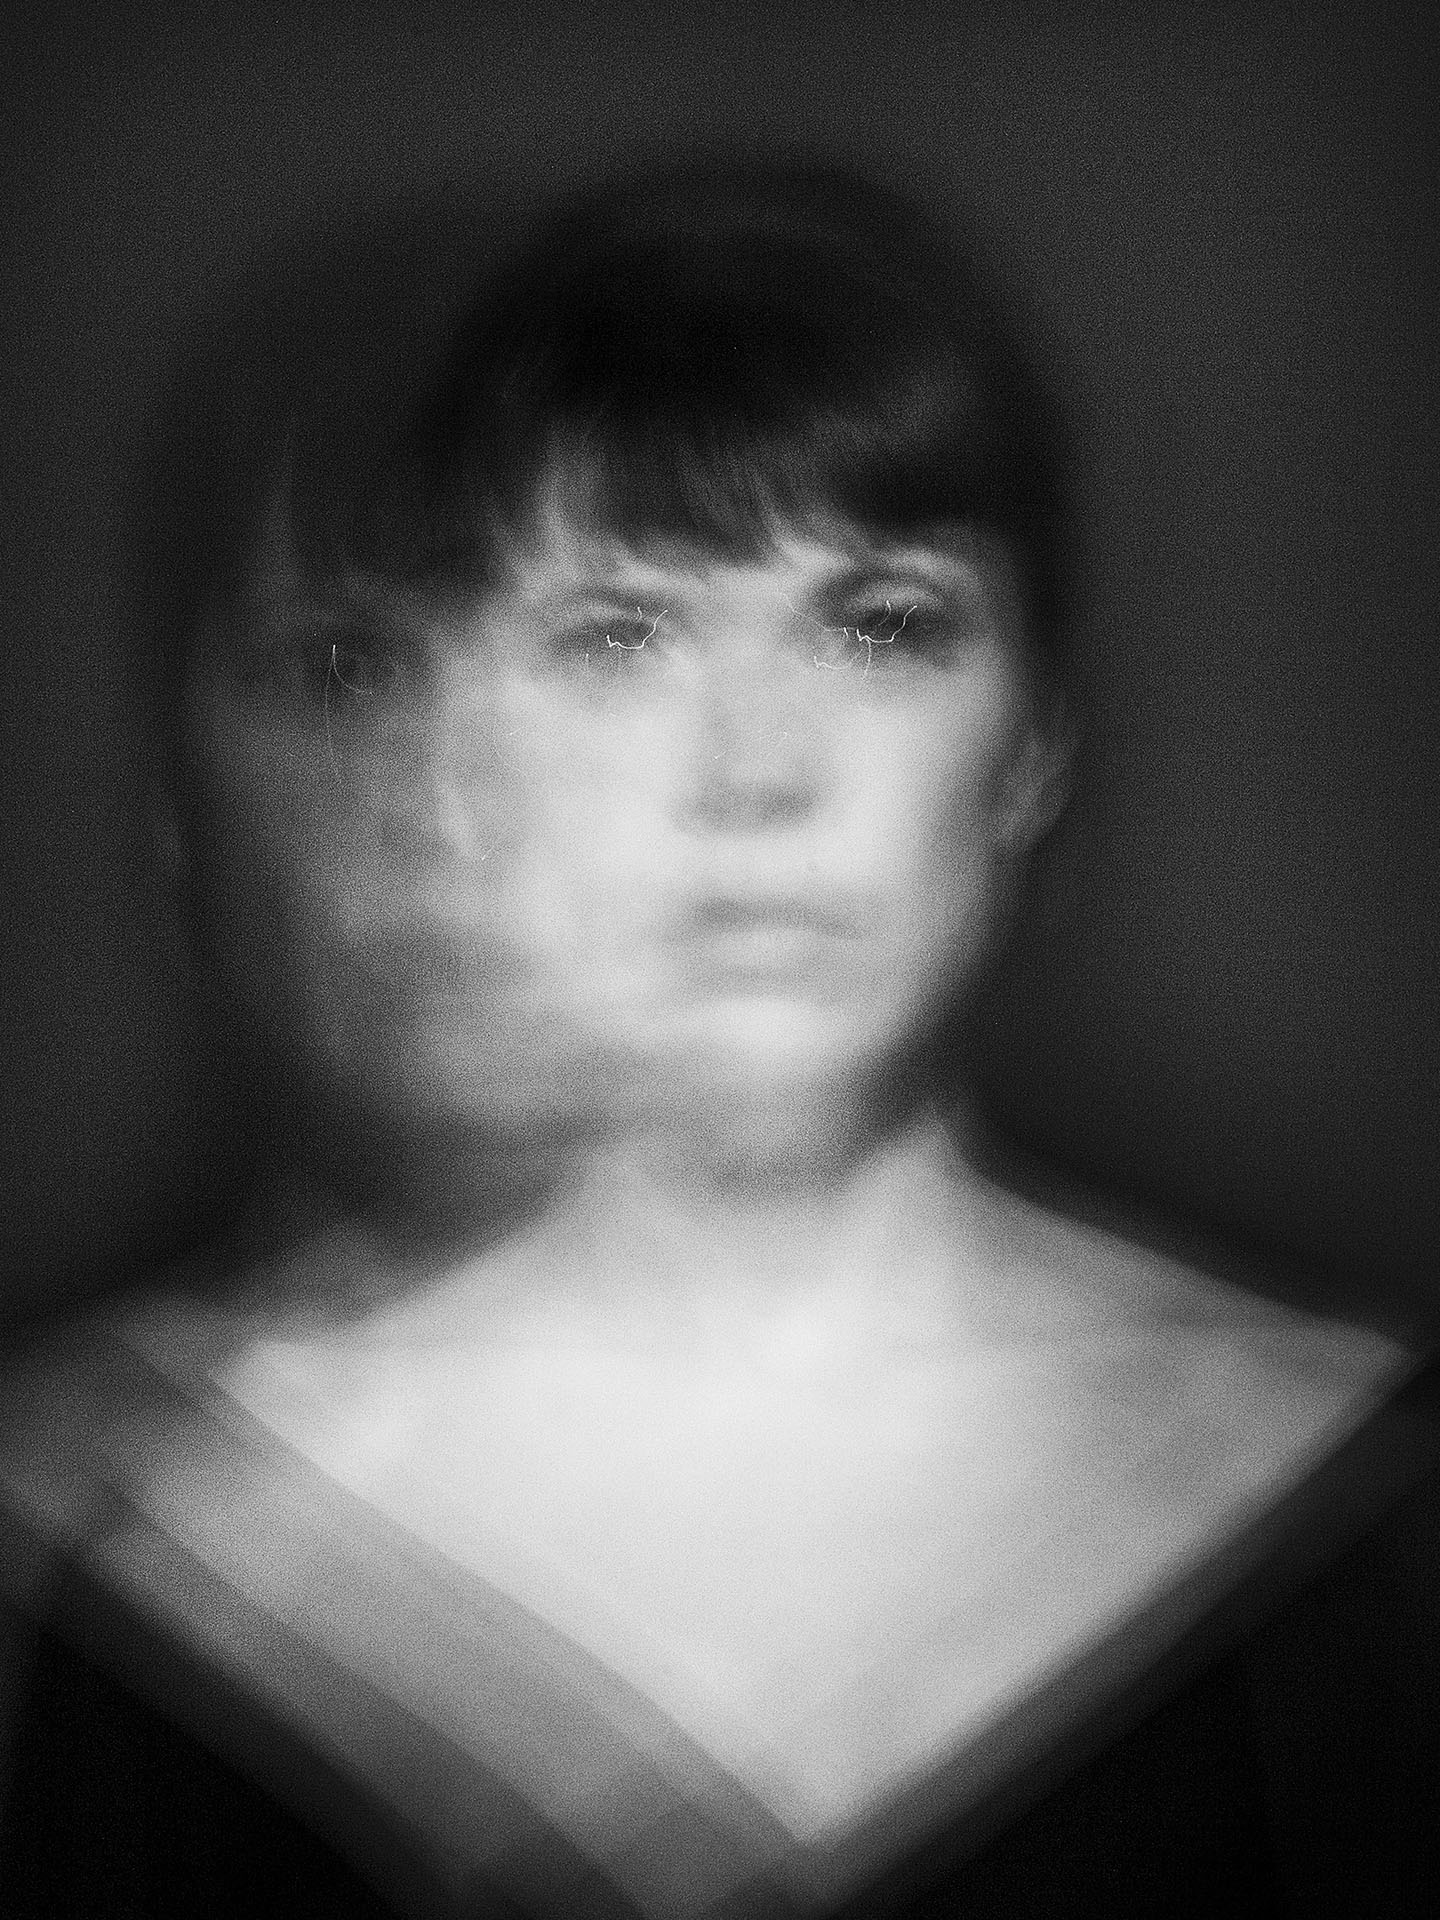 portrait of Anne Dorval in black and white with motion and blurred effect on black background by Jocelyn Michel for Voir